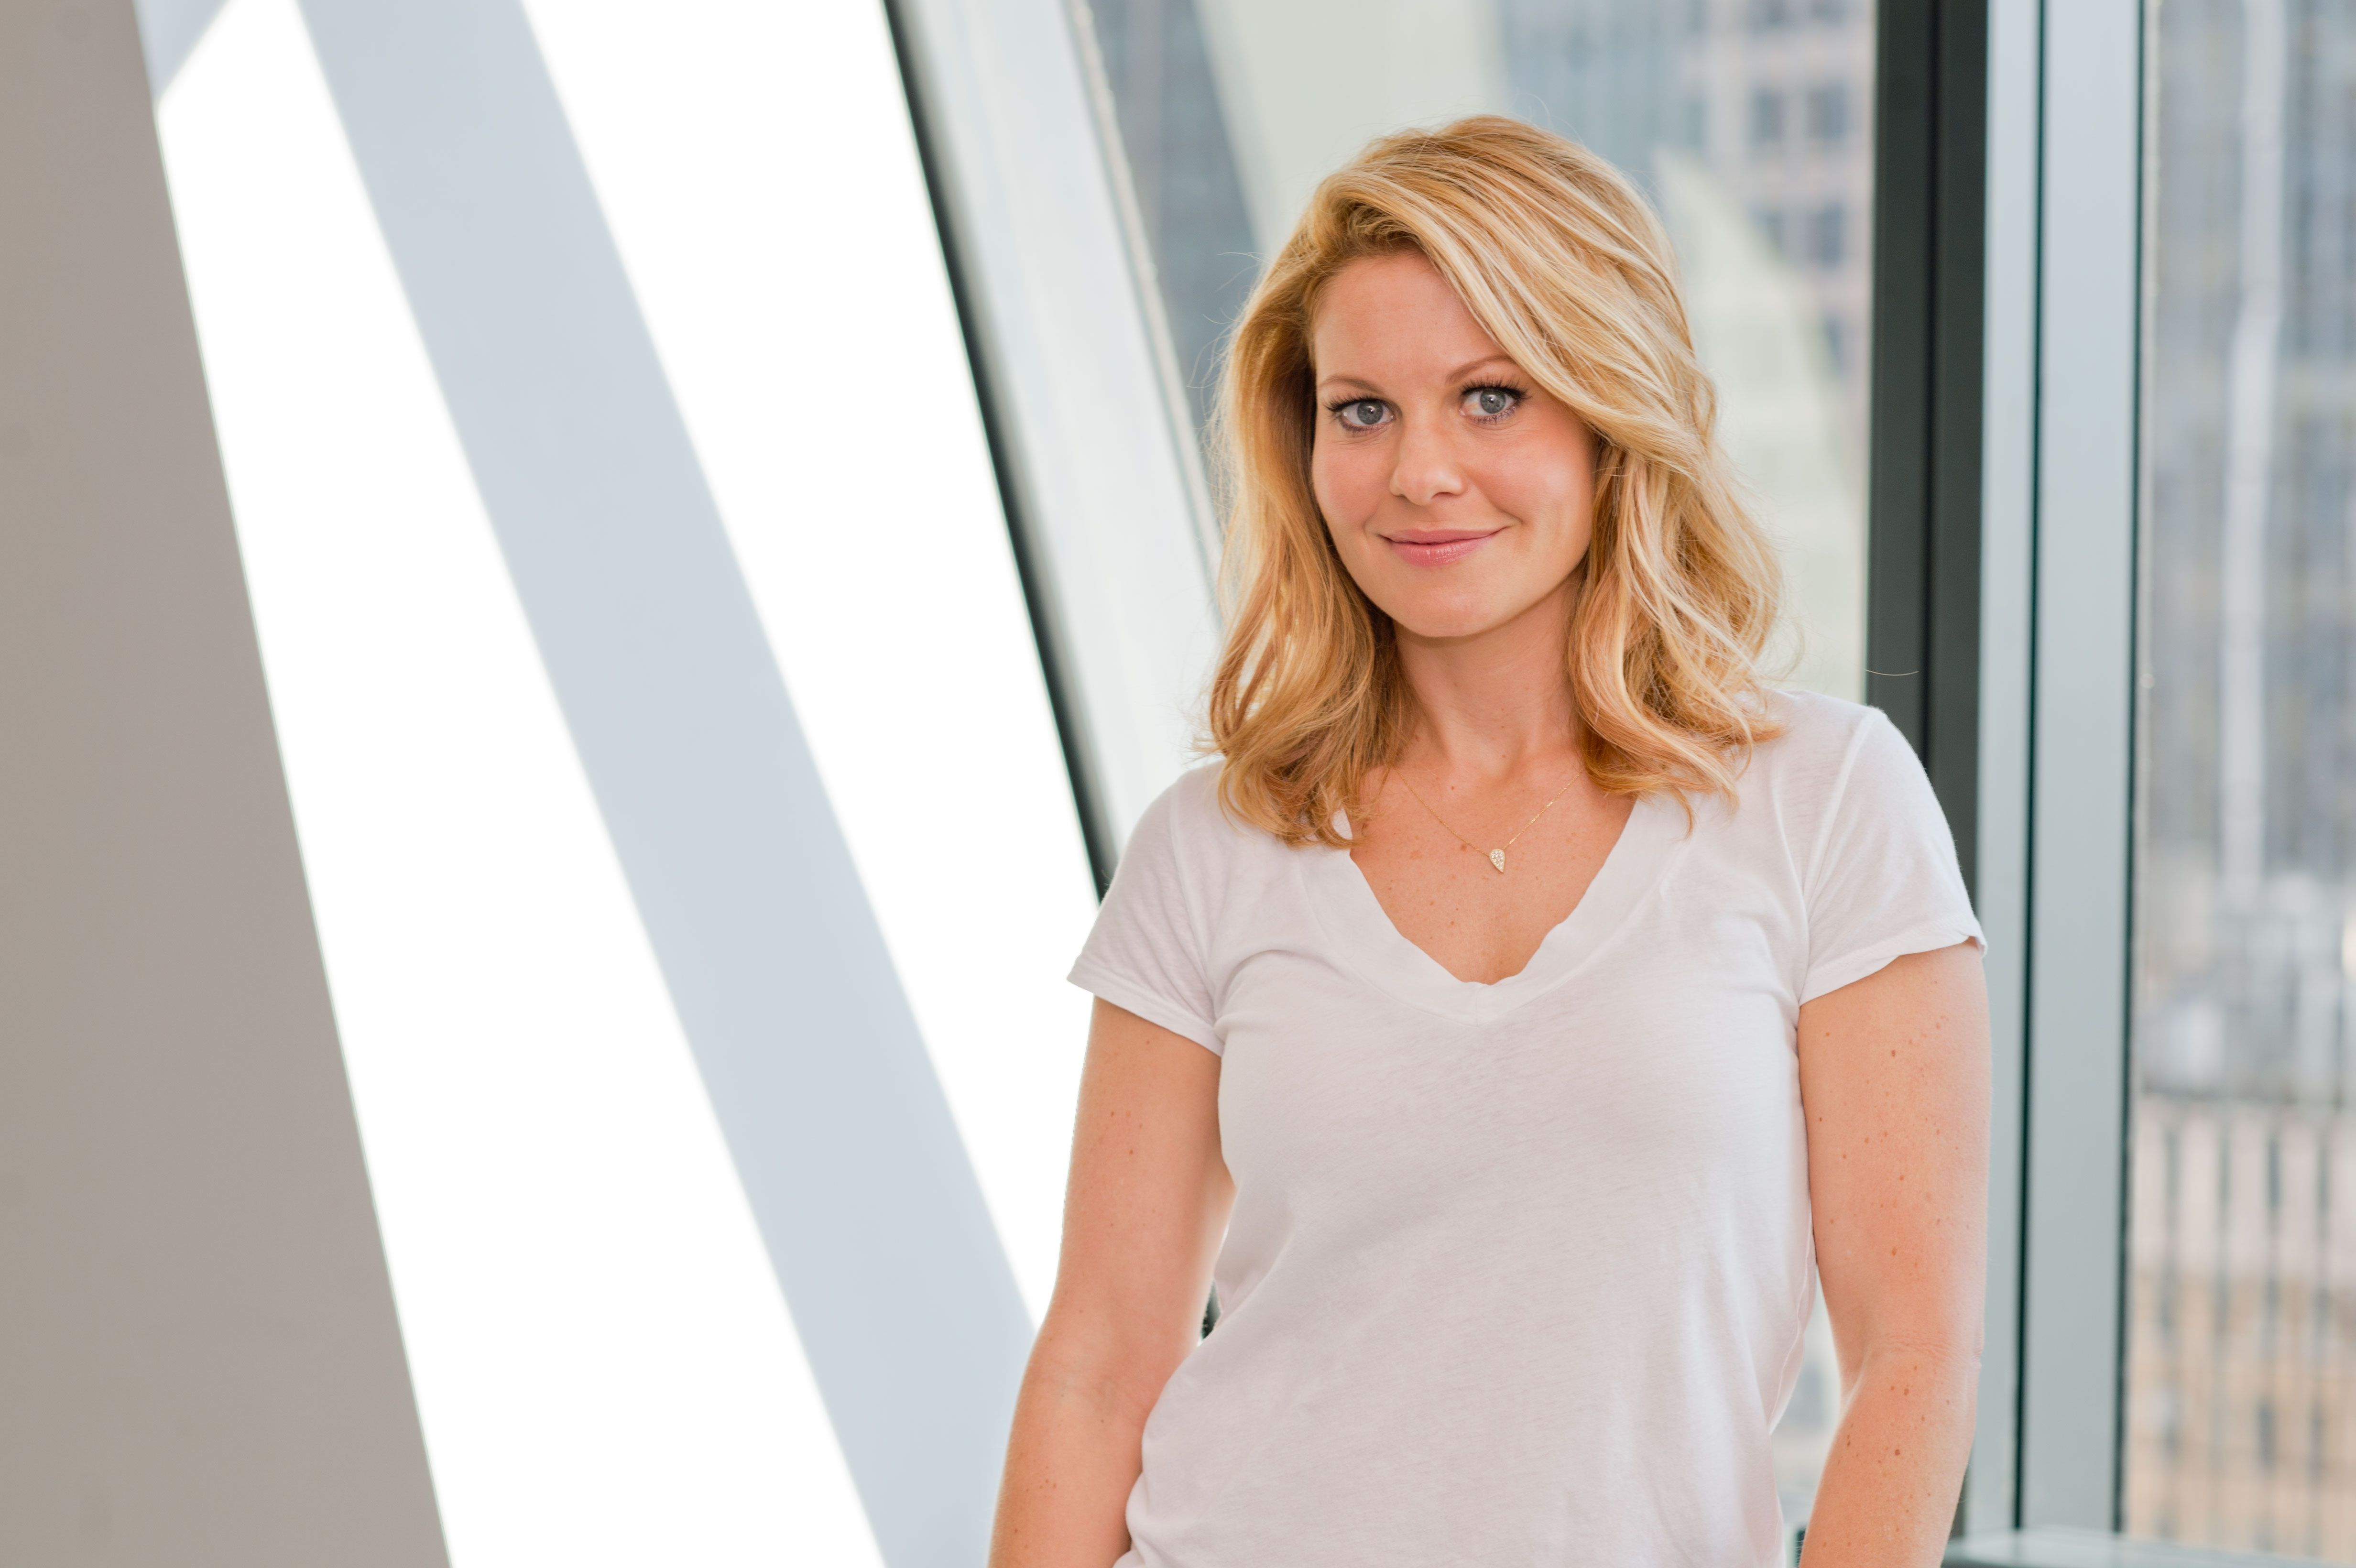 Candace Cameron Bures Must-Have Beauty Product Is Something You Already Own Candace Cameron Bures Must-Have Beauty Product Is Something You Already Own new images